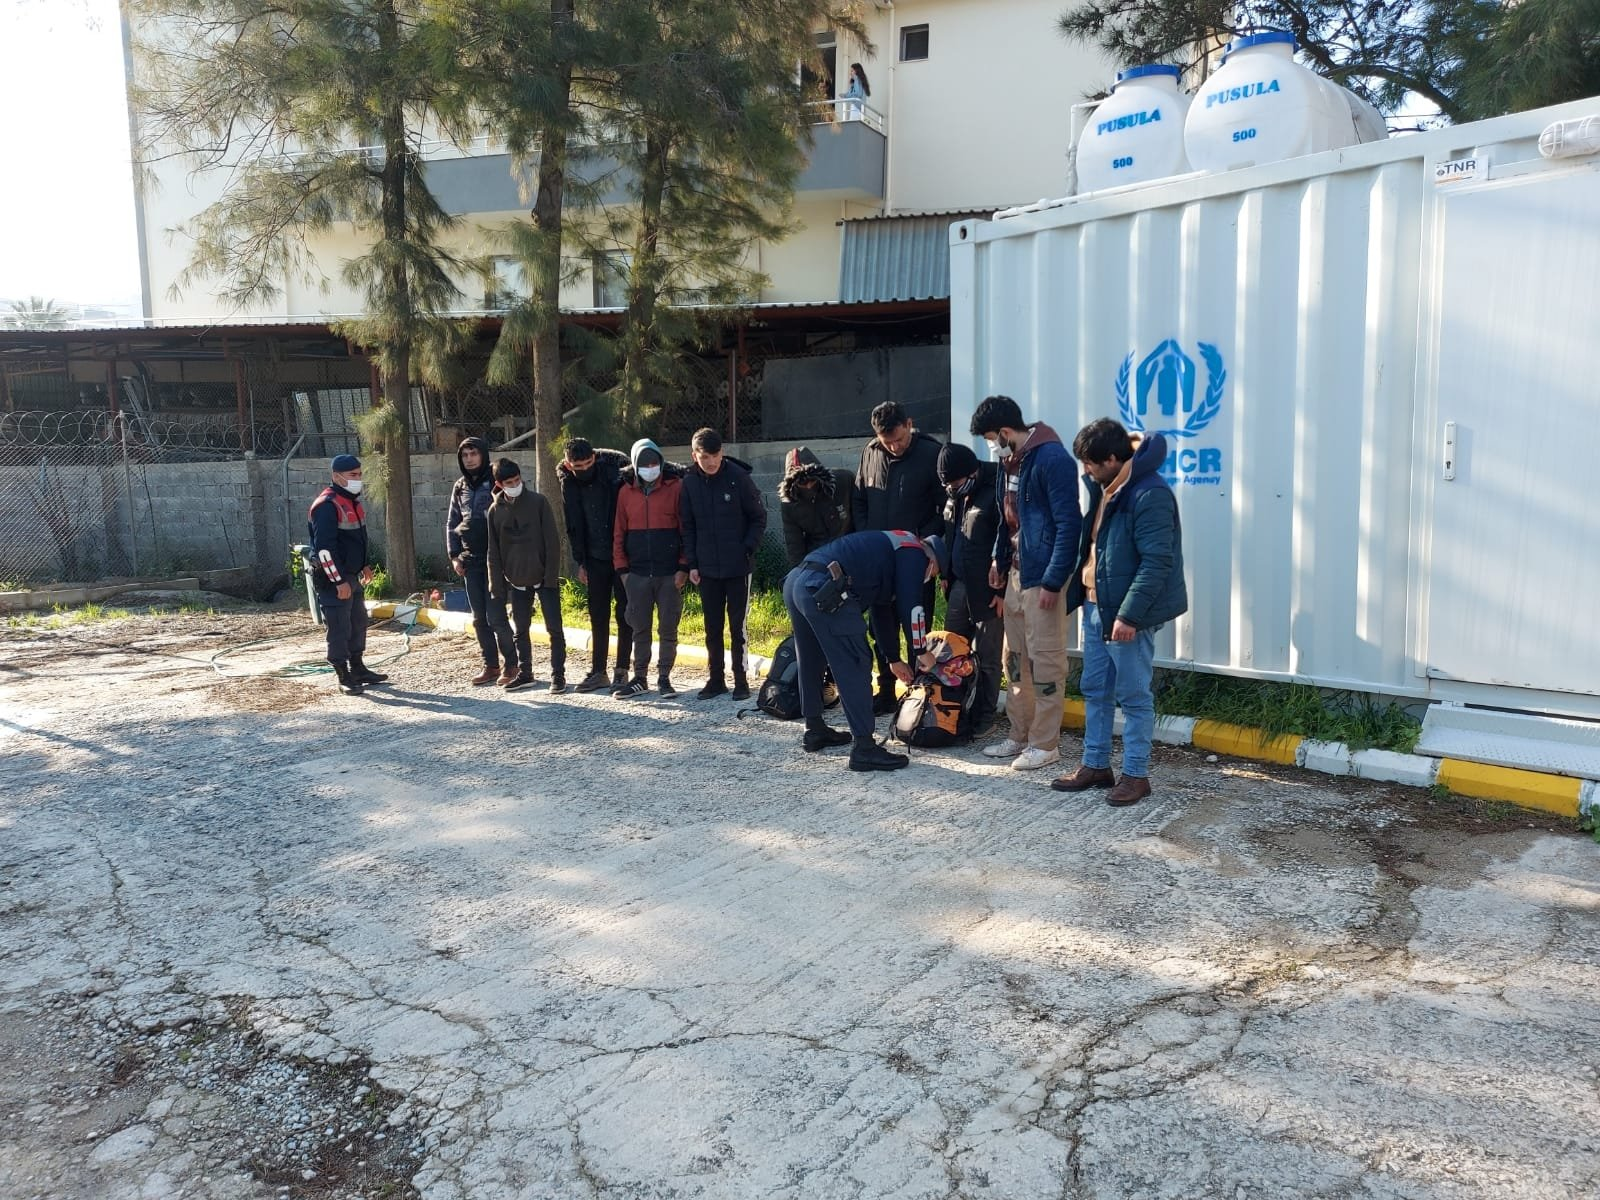 Gendarmerie forces caught several foreign nationals in Izmir province's Urla and Seferihisar districts, Aug. 11, 2021. (DHA Photo)